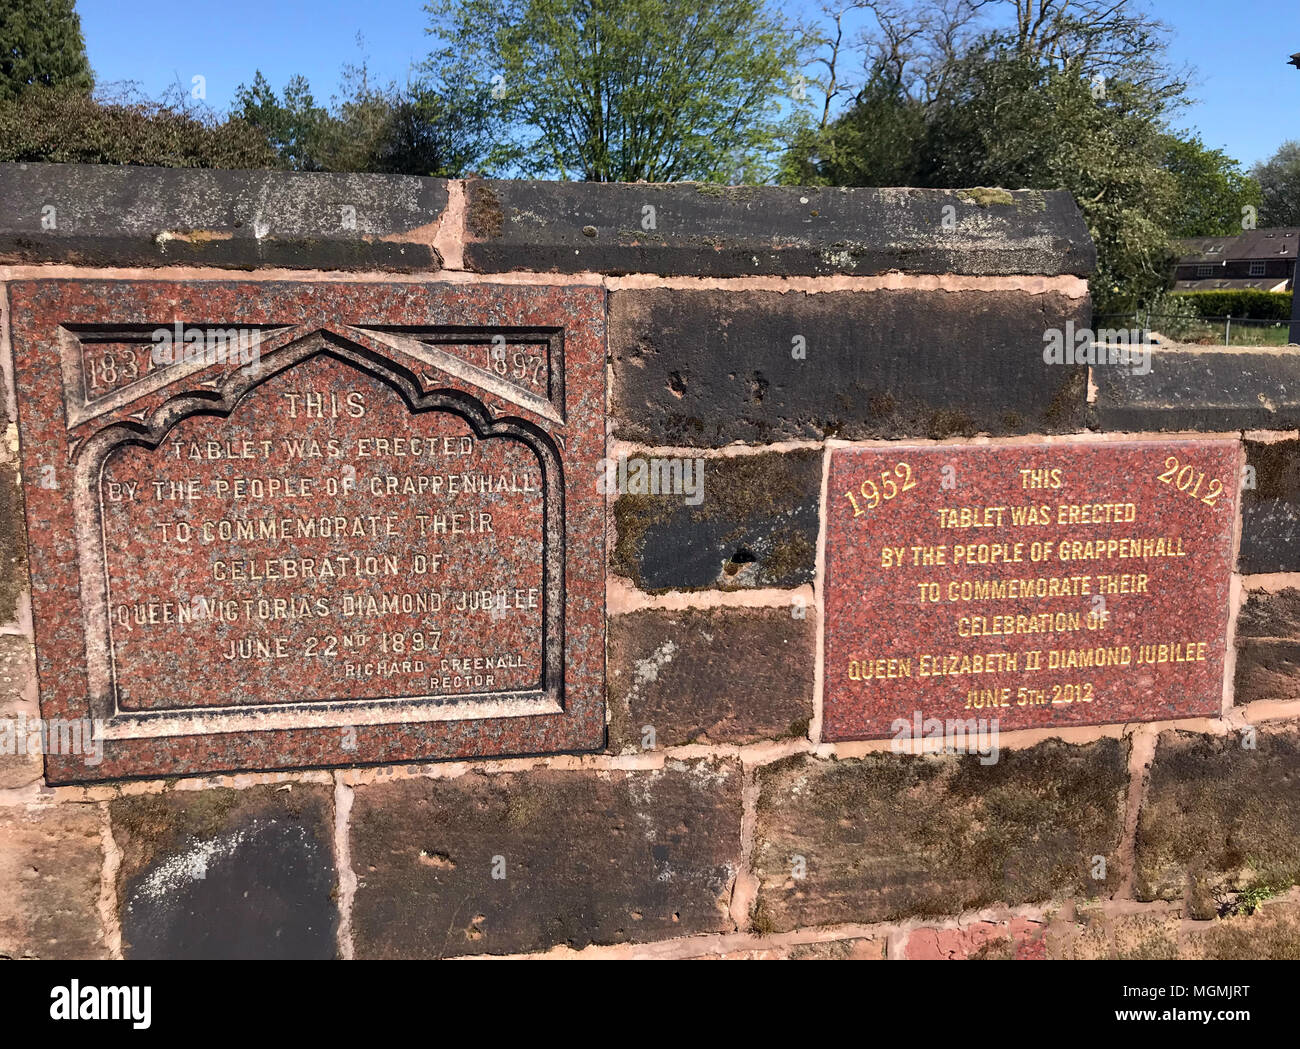 Grappenhall Diamond Jubilee Queen Plaques - Stock Image